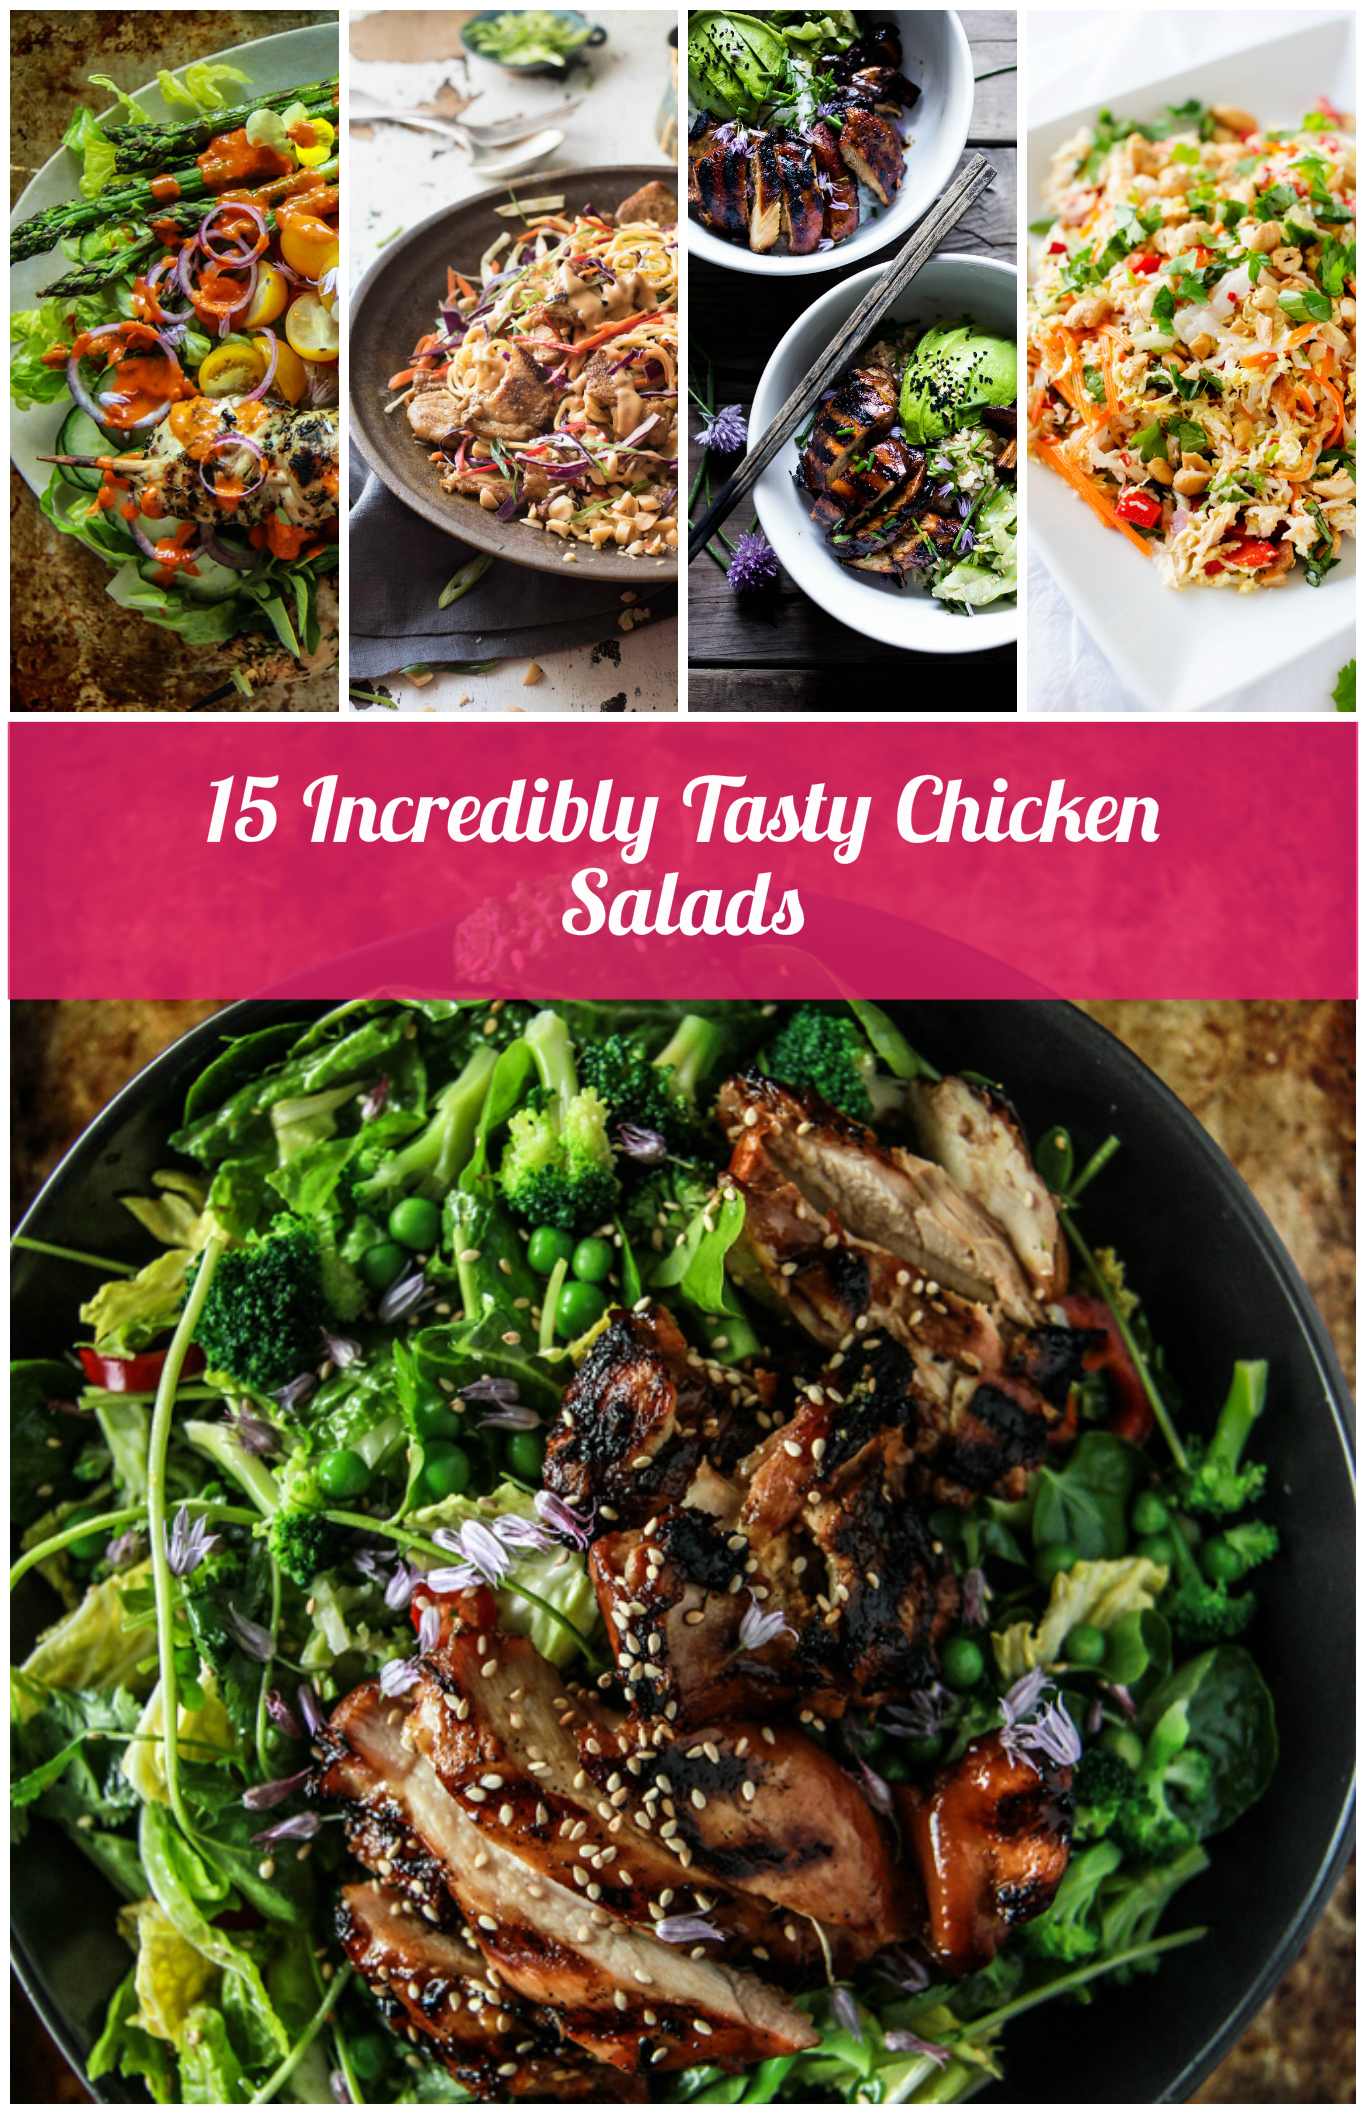 15 Incredibly Tasty Chicken Salads